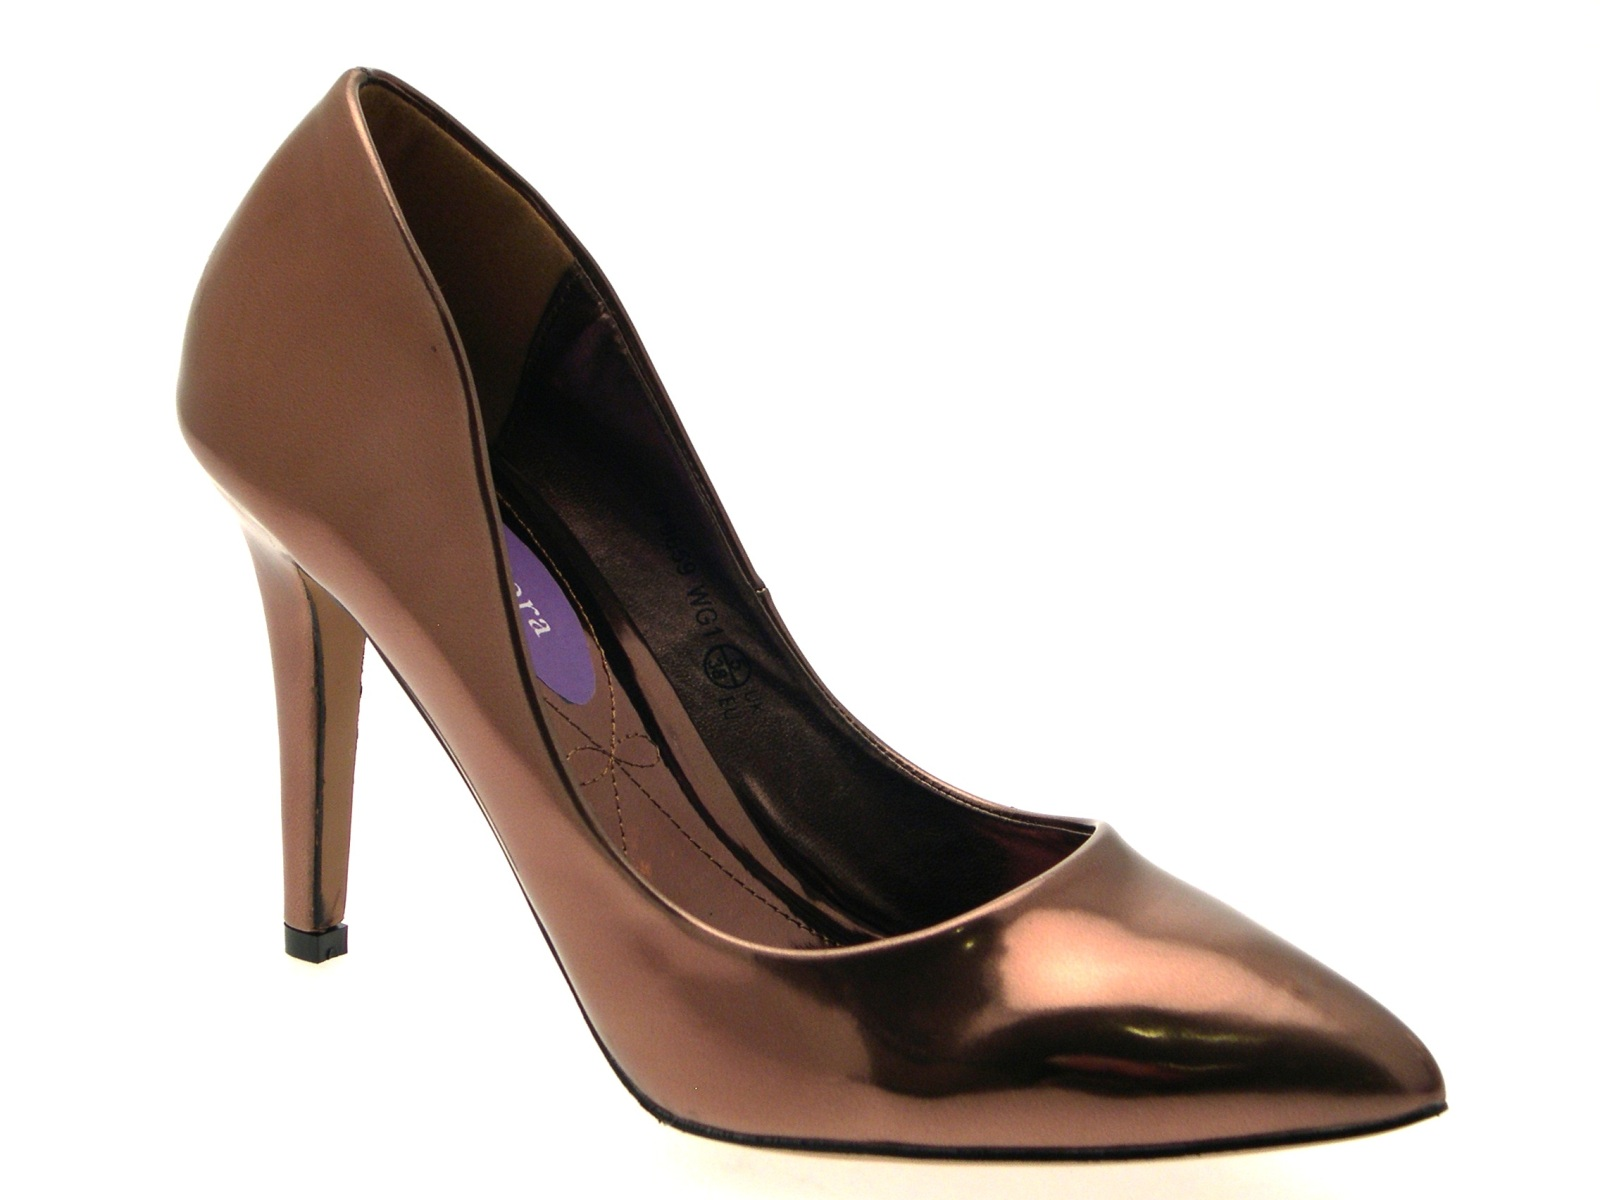 Womens-Metallic-Pointed-Toe-Court-Stiletto-High-Heels-Ladies-Work-Office-Shoes thumbnail 8